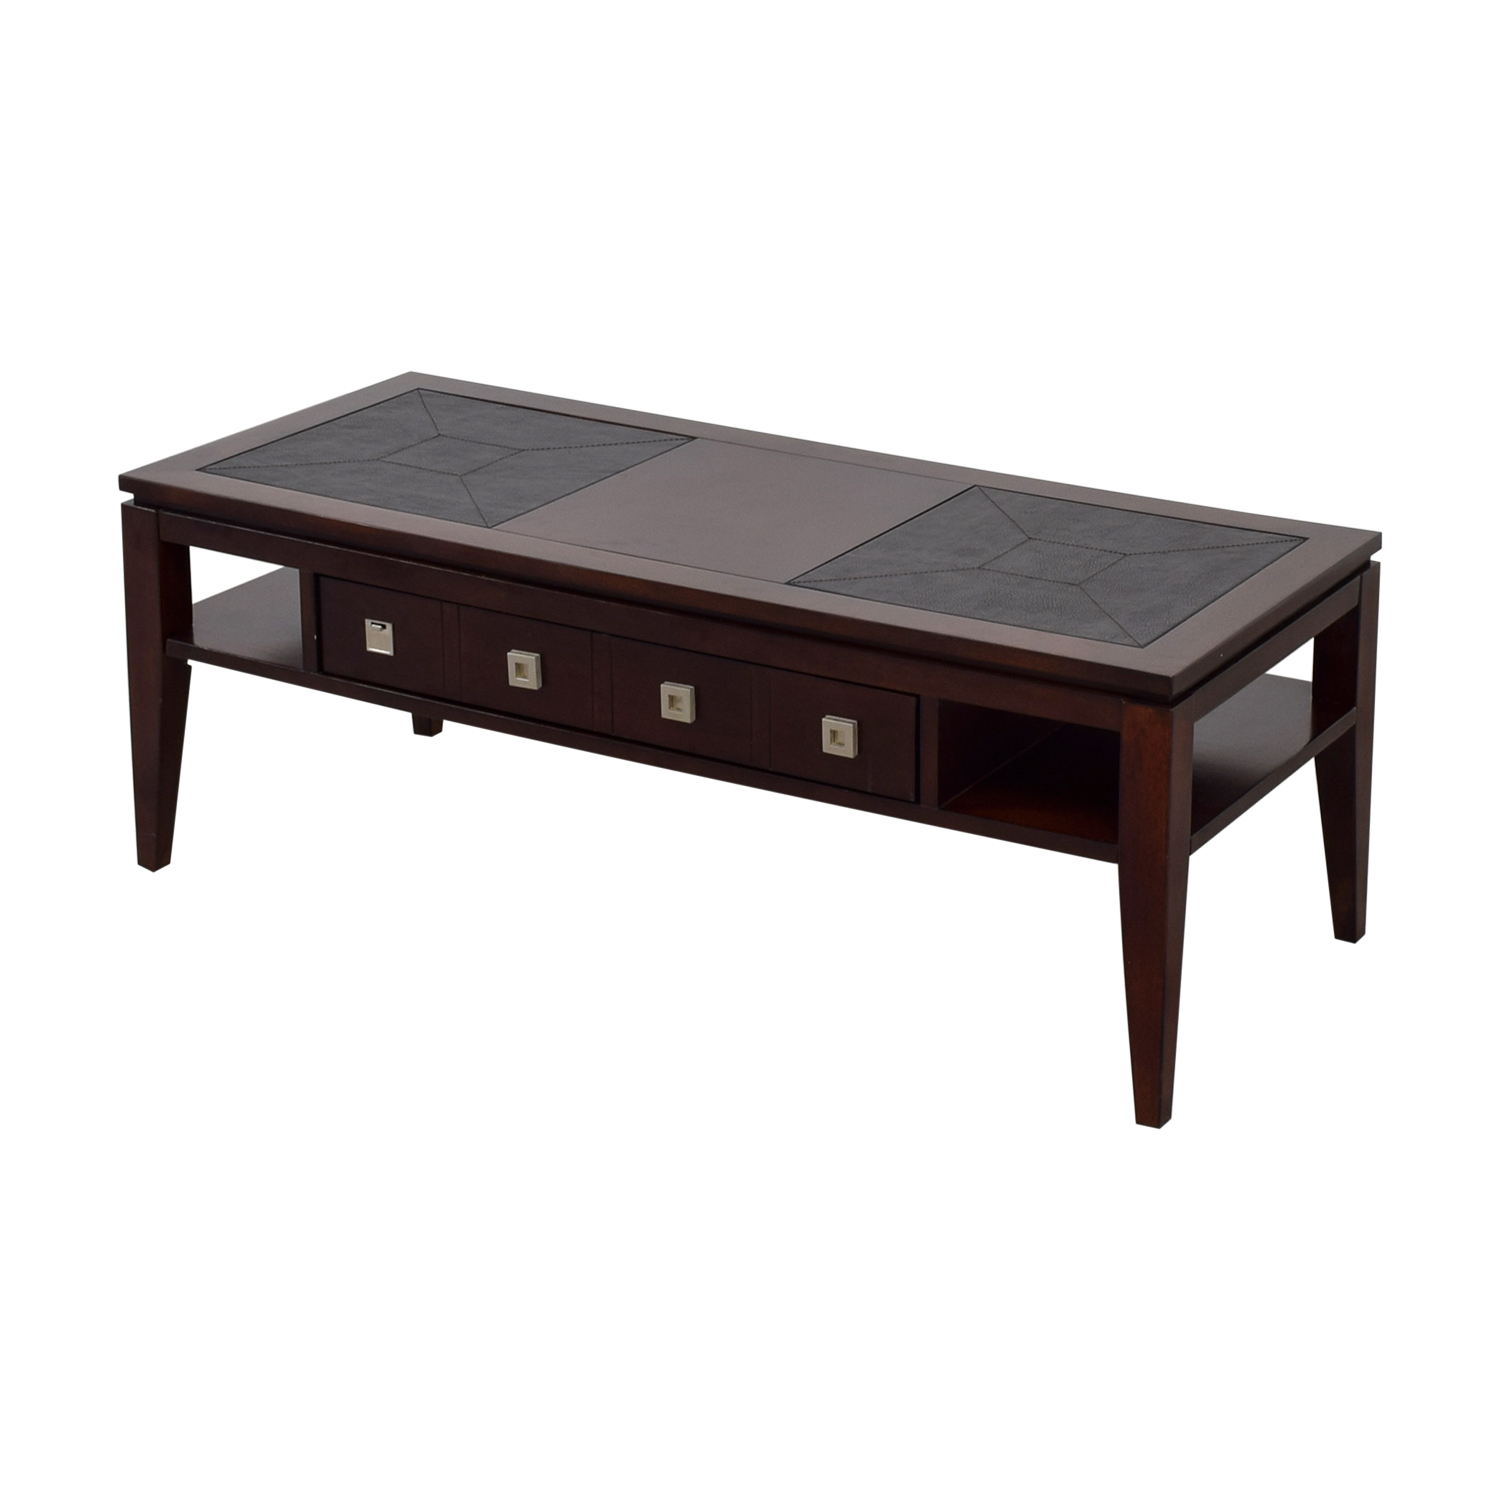 Buy Raymour & Flanigan Single Drawer Coffee Table Raymour & Flanigan